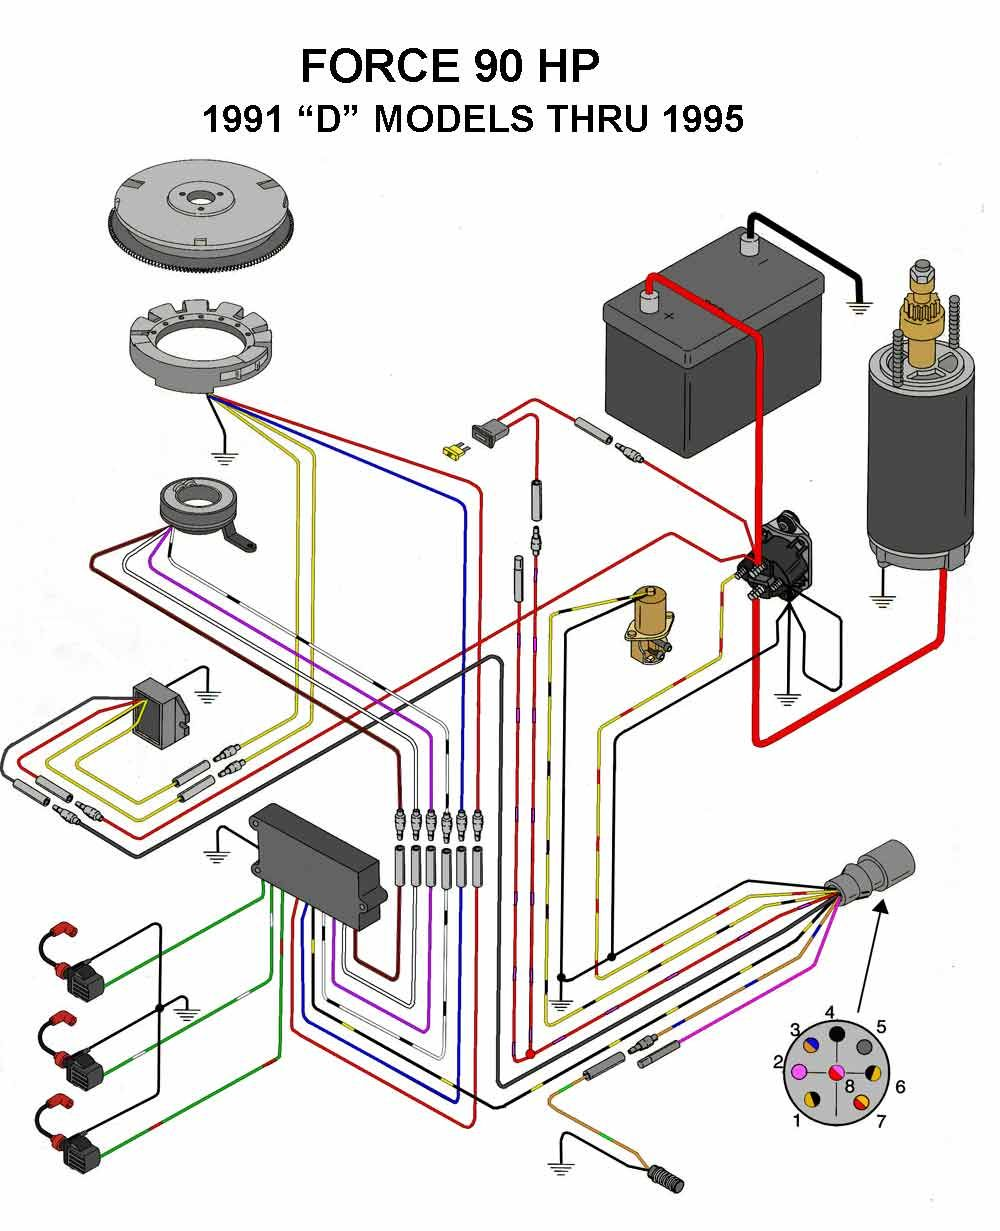 e8b885d42041bc15a74cc8cab5e8a4b0 wiring engine ignition system schematic ignition systems mercury outboard wiring diagram schematic at mifinder.co